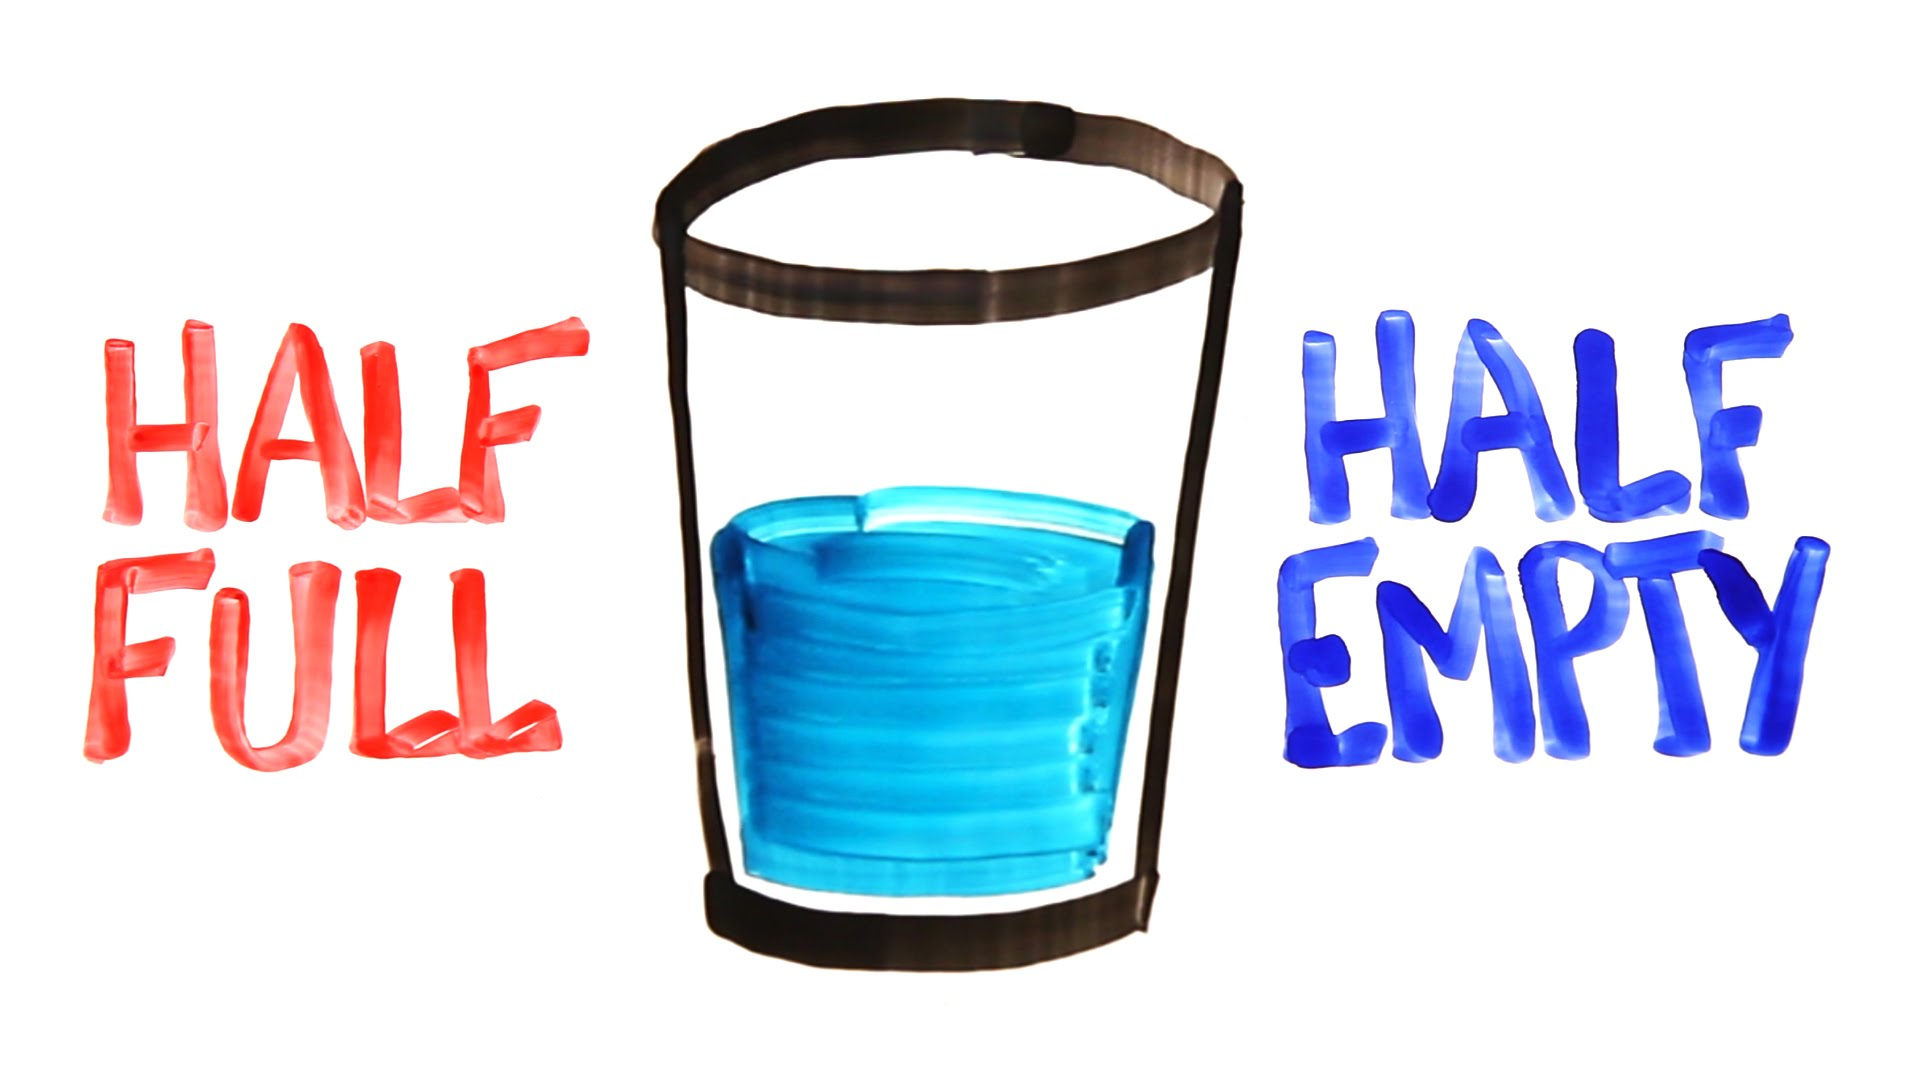 Romania 10 years after joining EU: is the glass half empty or half full?